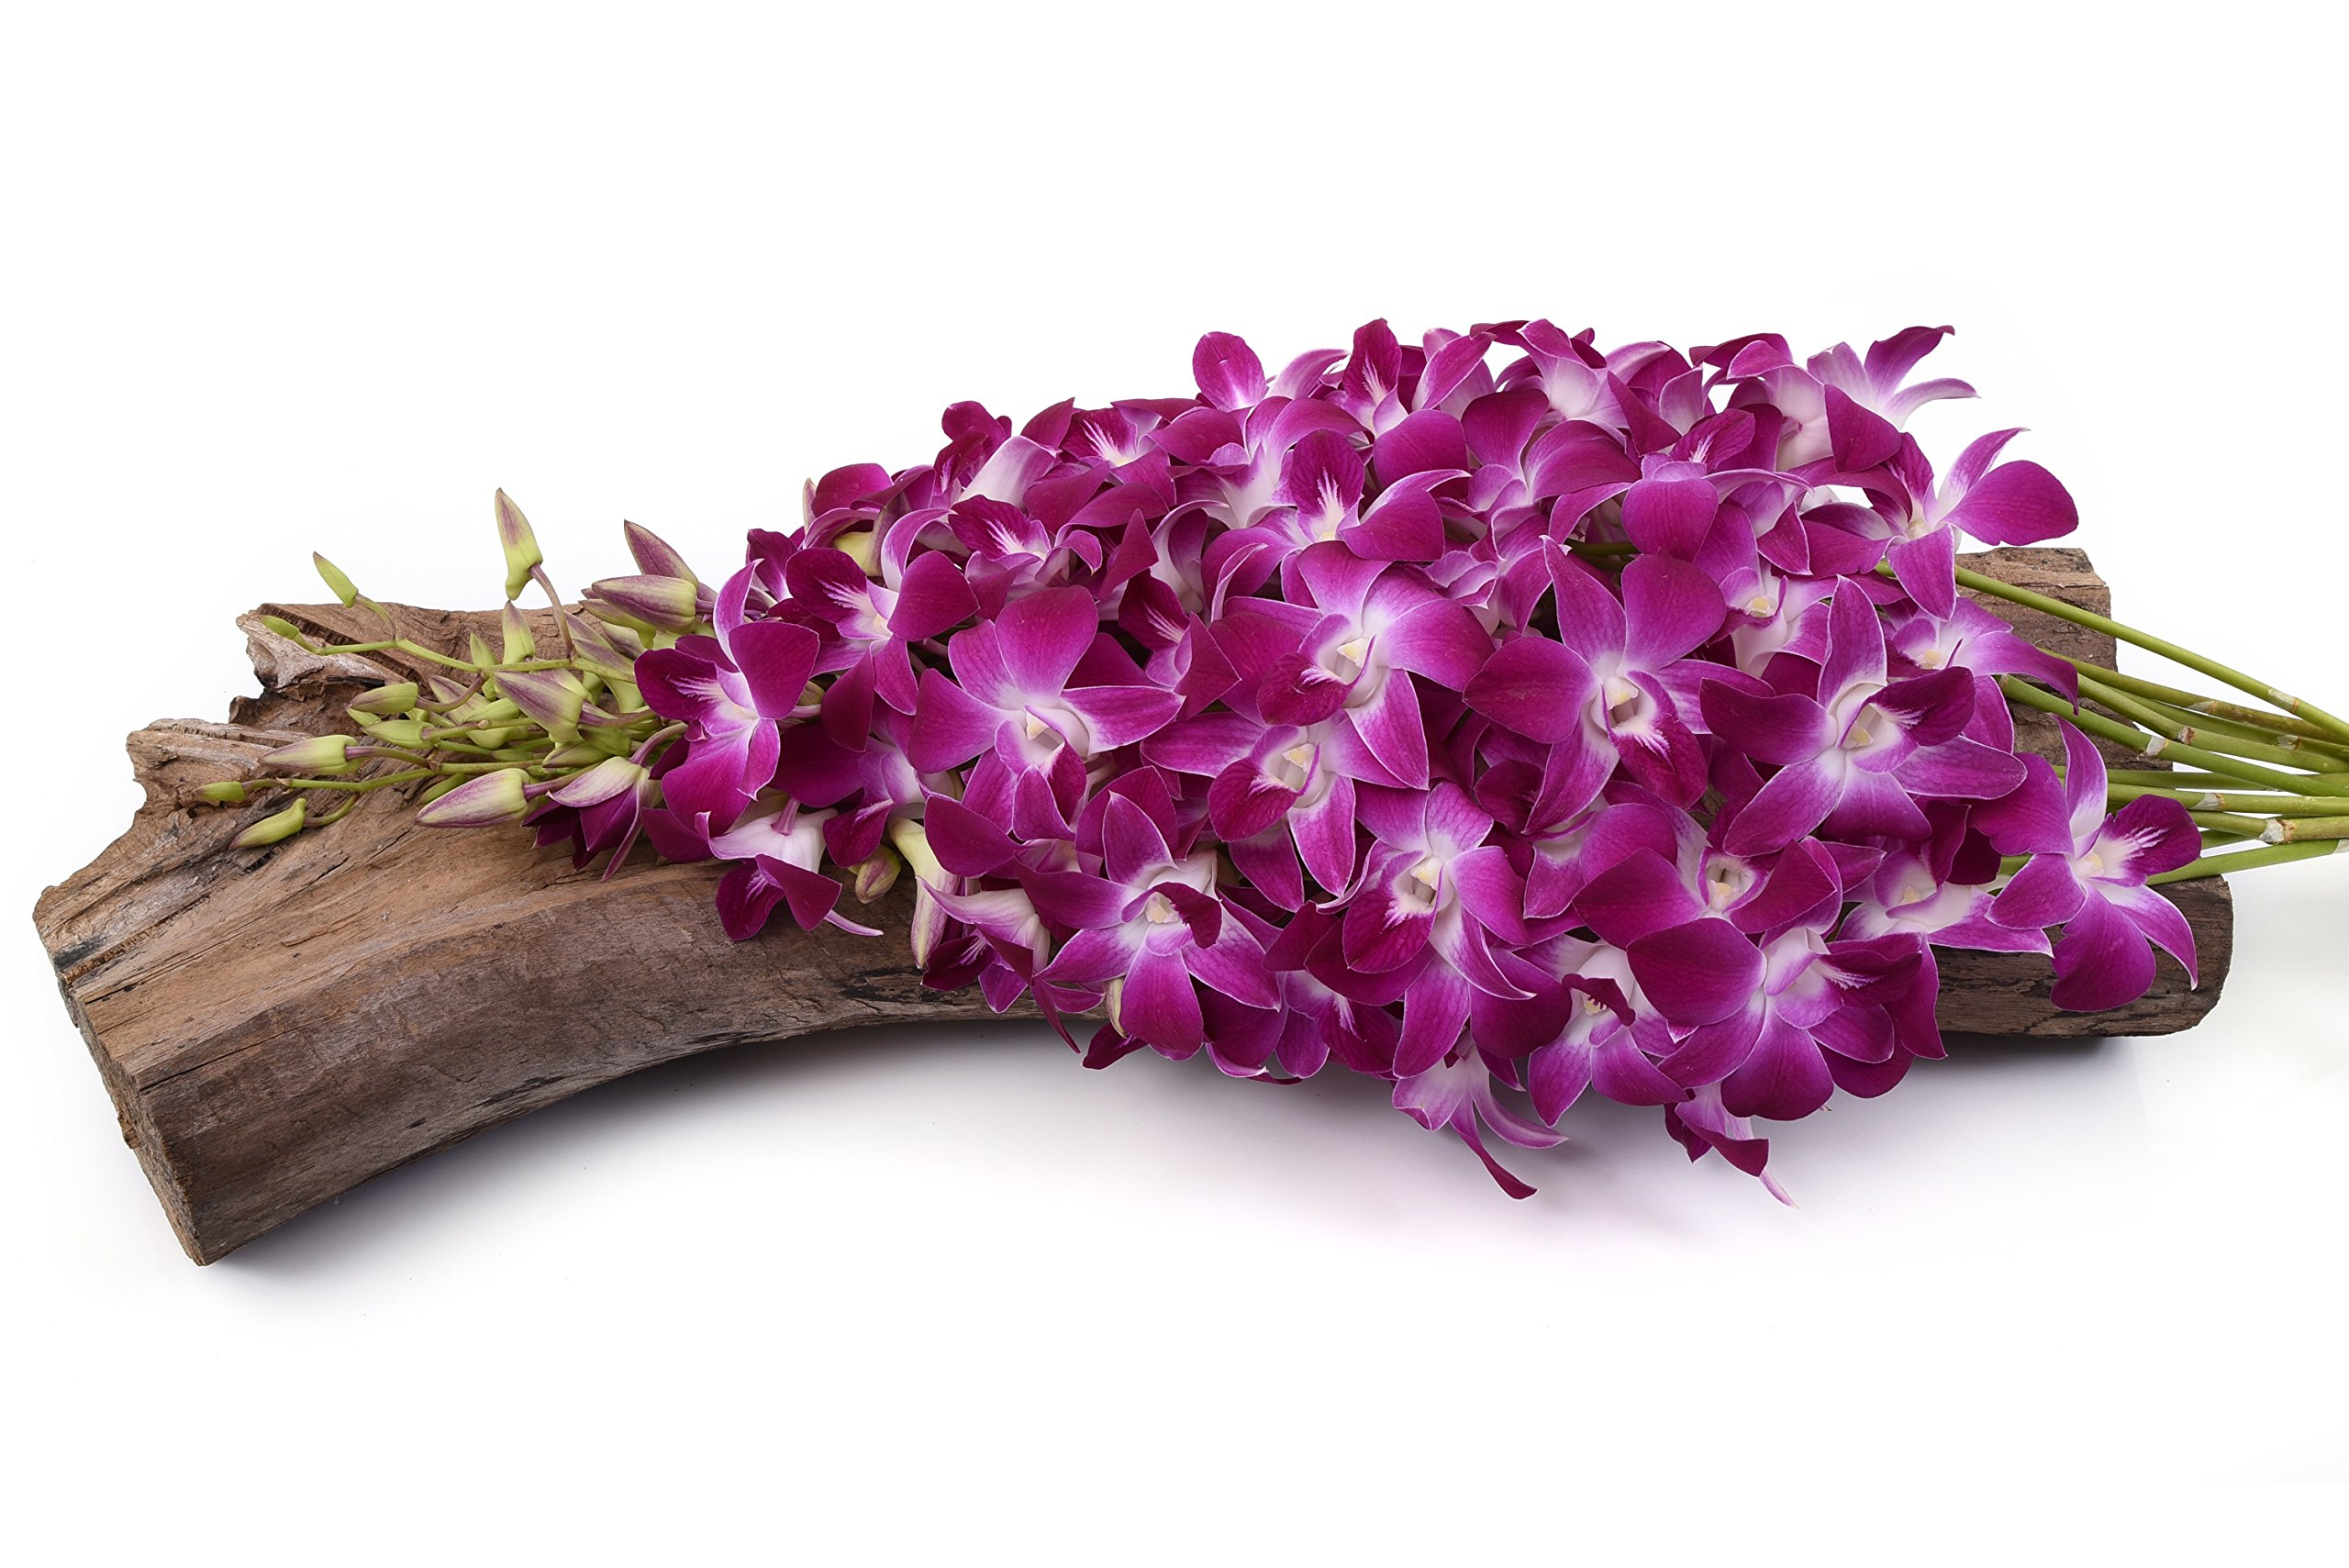 Amazon.com : Fresh Flowers - Purple Dendrobium Orchids : Fresh Cut ...